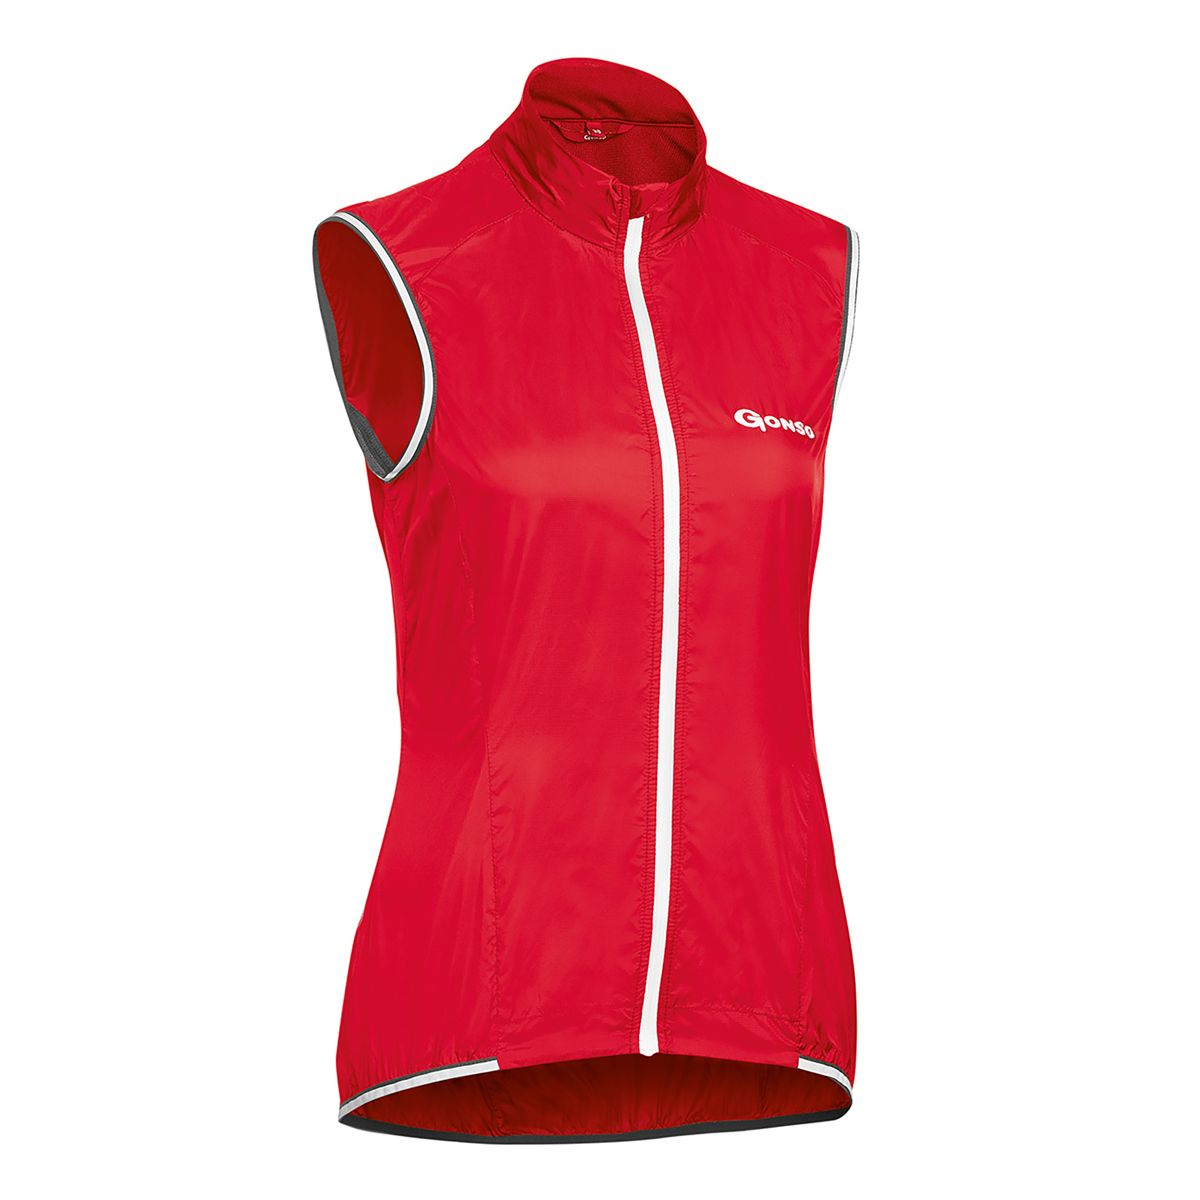 GONSO FURKA windproof gilet for women | Vests